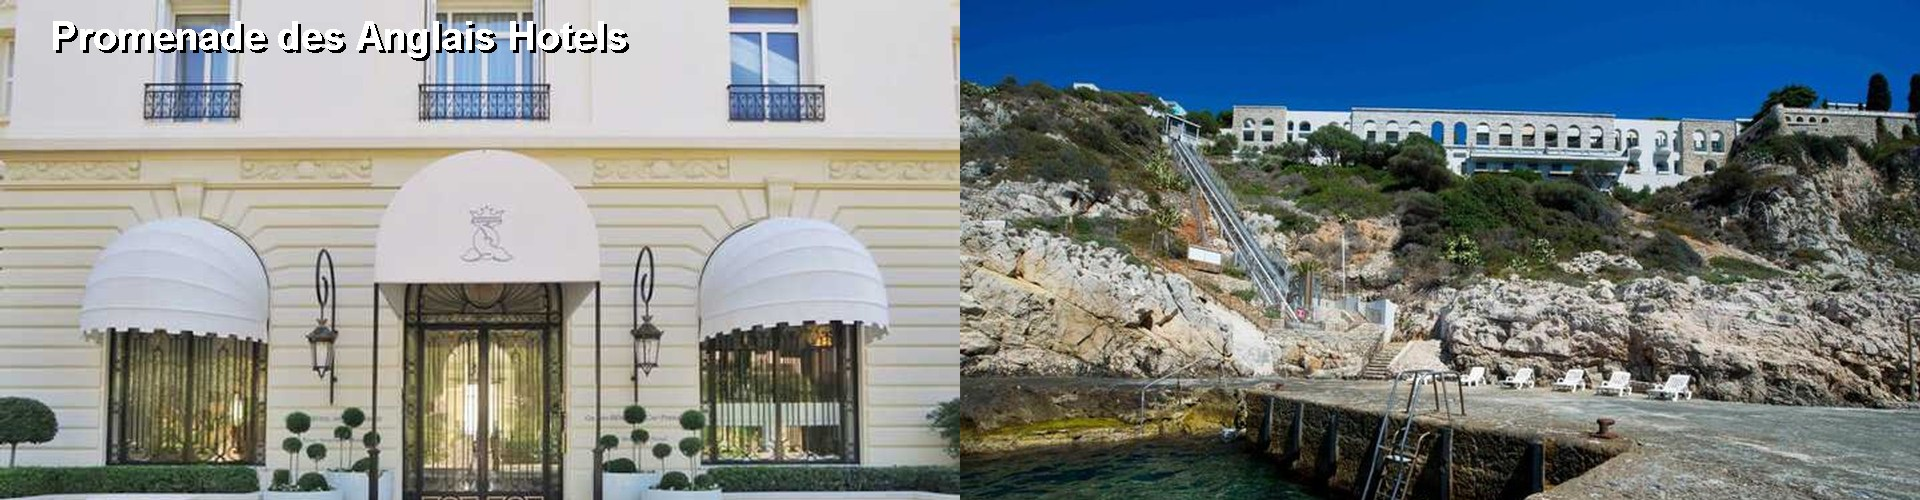 5 Best Hotels near Promenade des Anglais